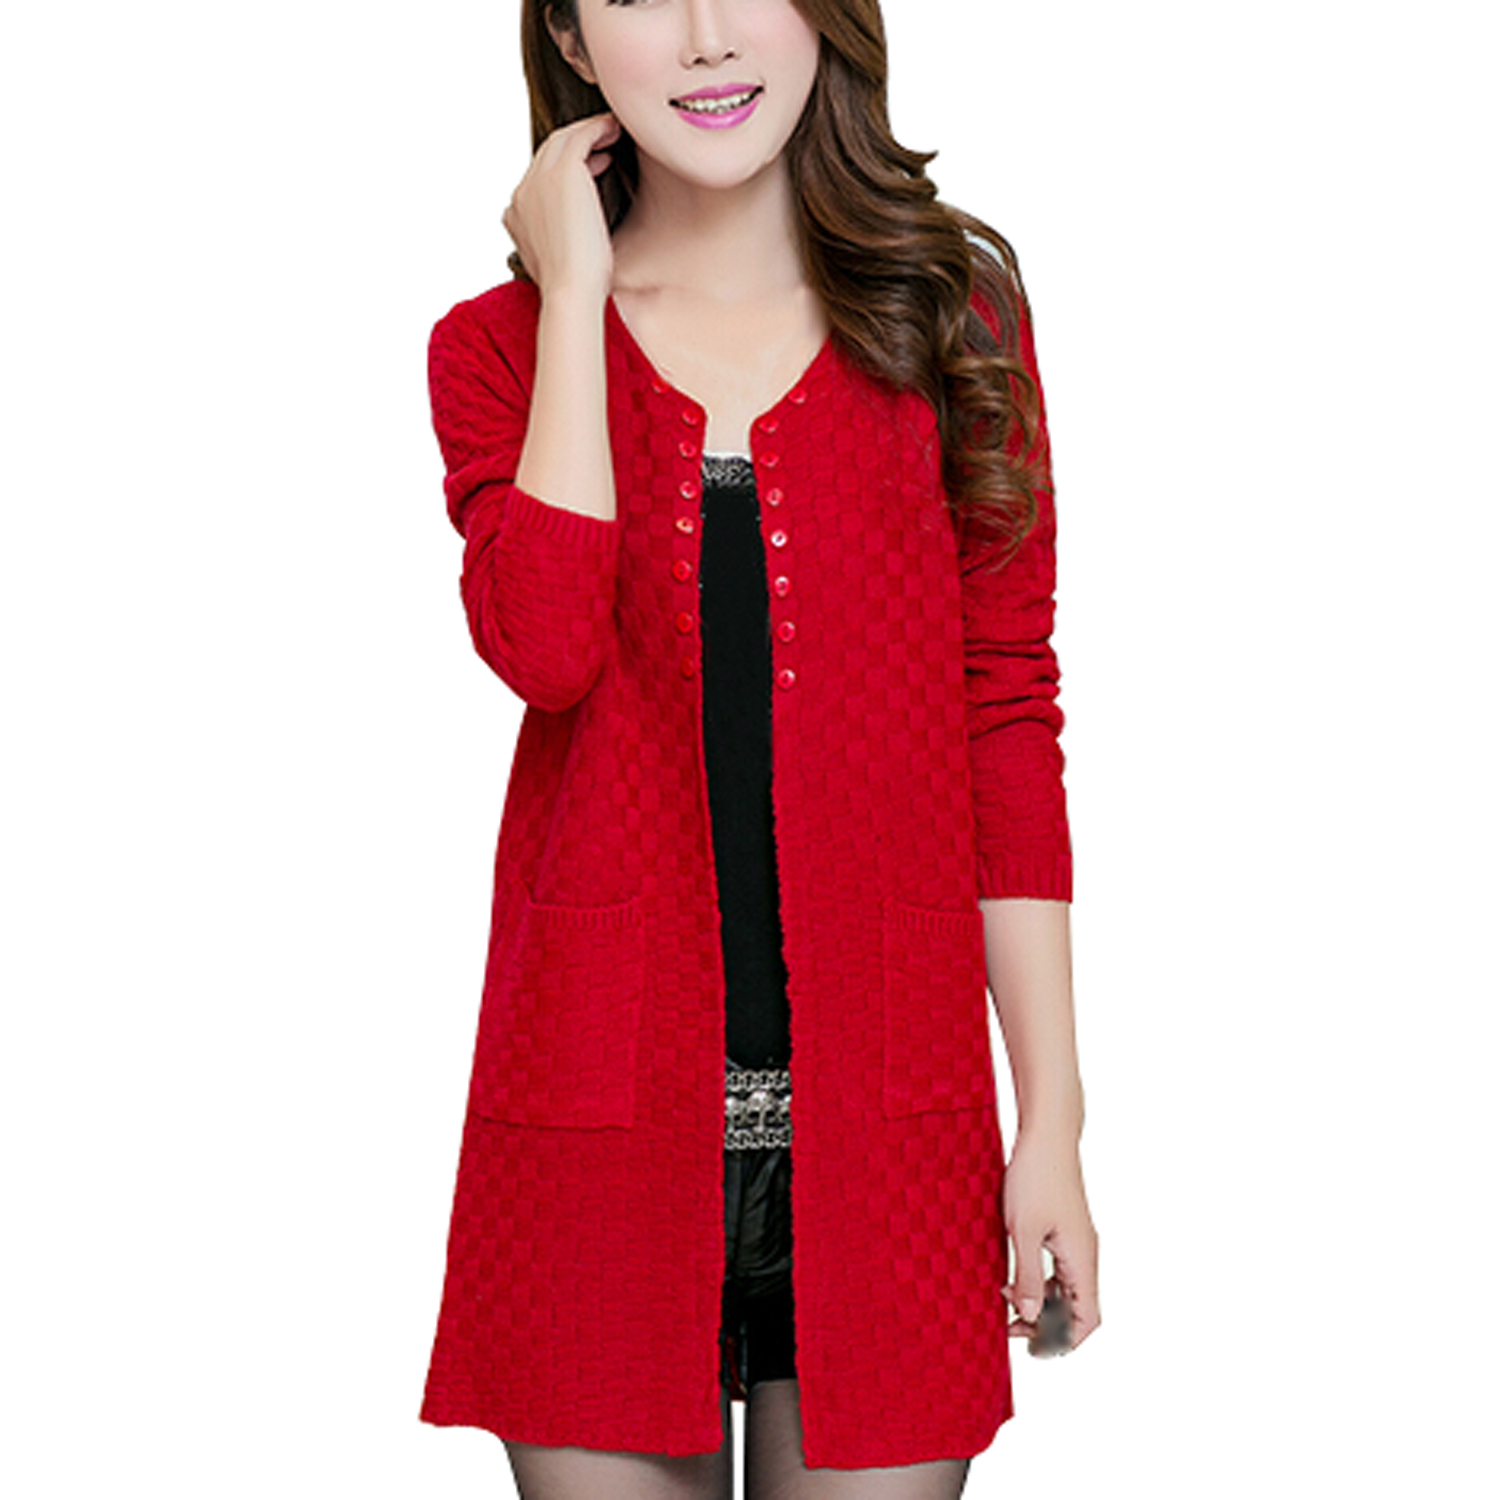 Long Red Cardigans Promotion-Shop for Promotional Long Red ...